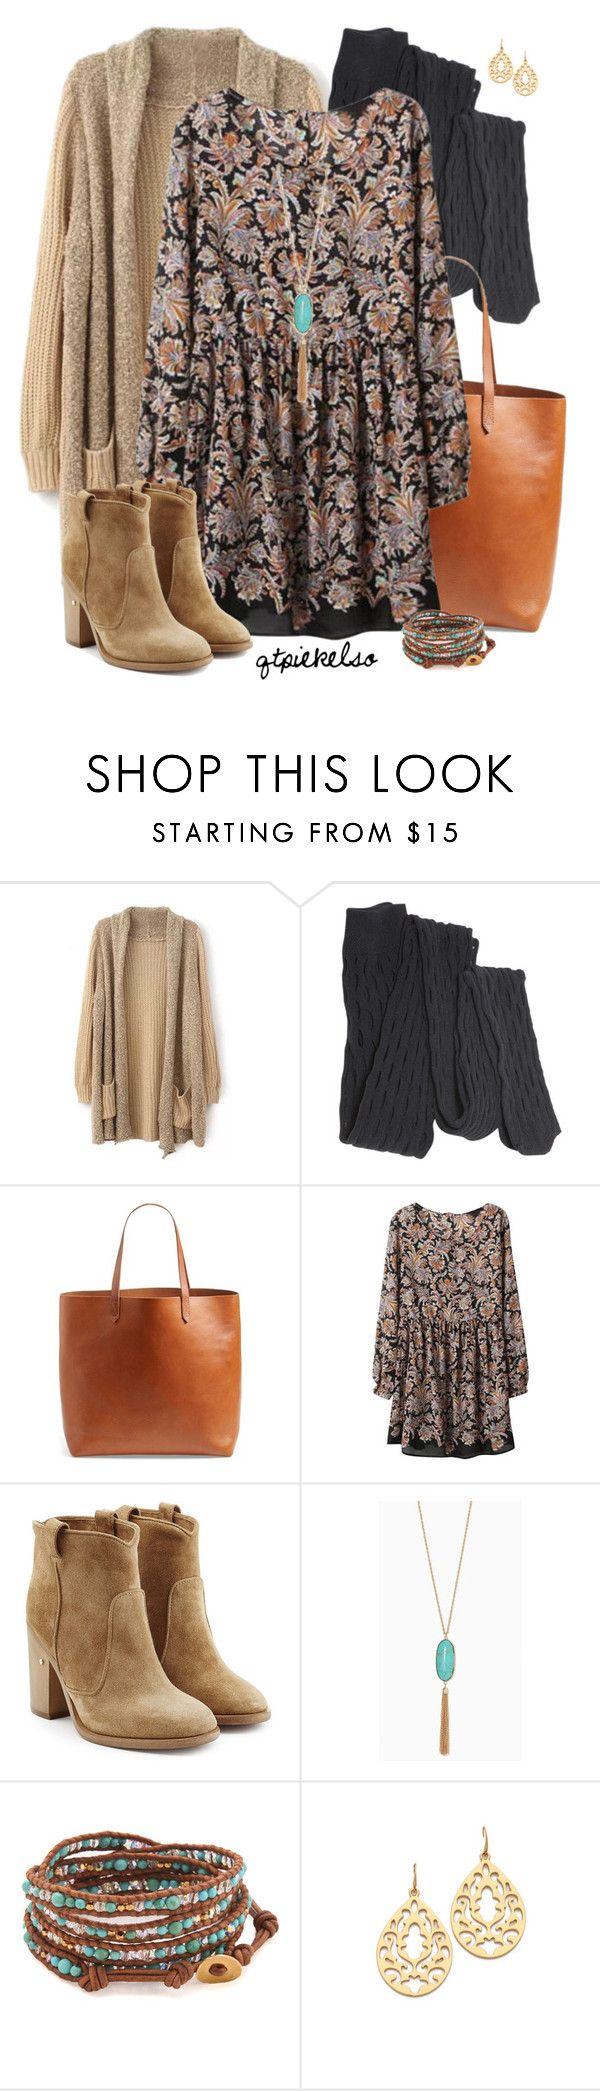 """Boho Booties"" by qtpiekelso on Polyvore featuring Proenza Schouler, Madewell, Laurence Dacade, Chan Luu and Juicy Couture"